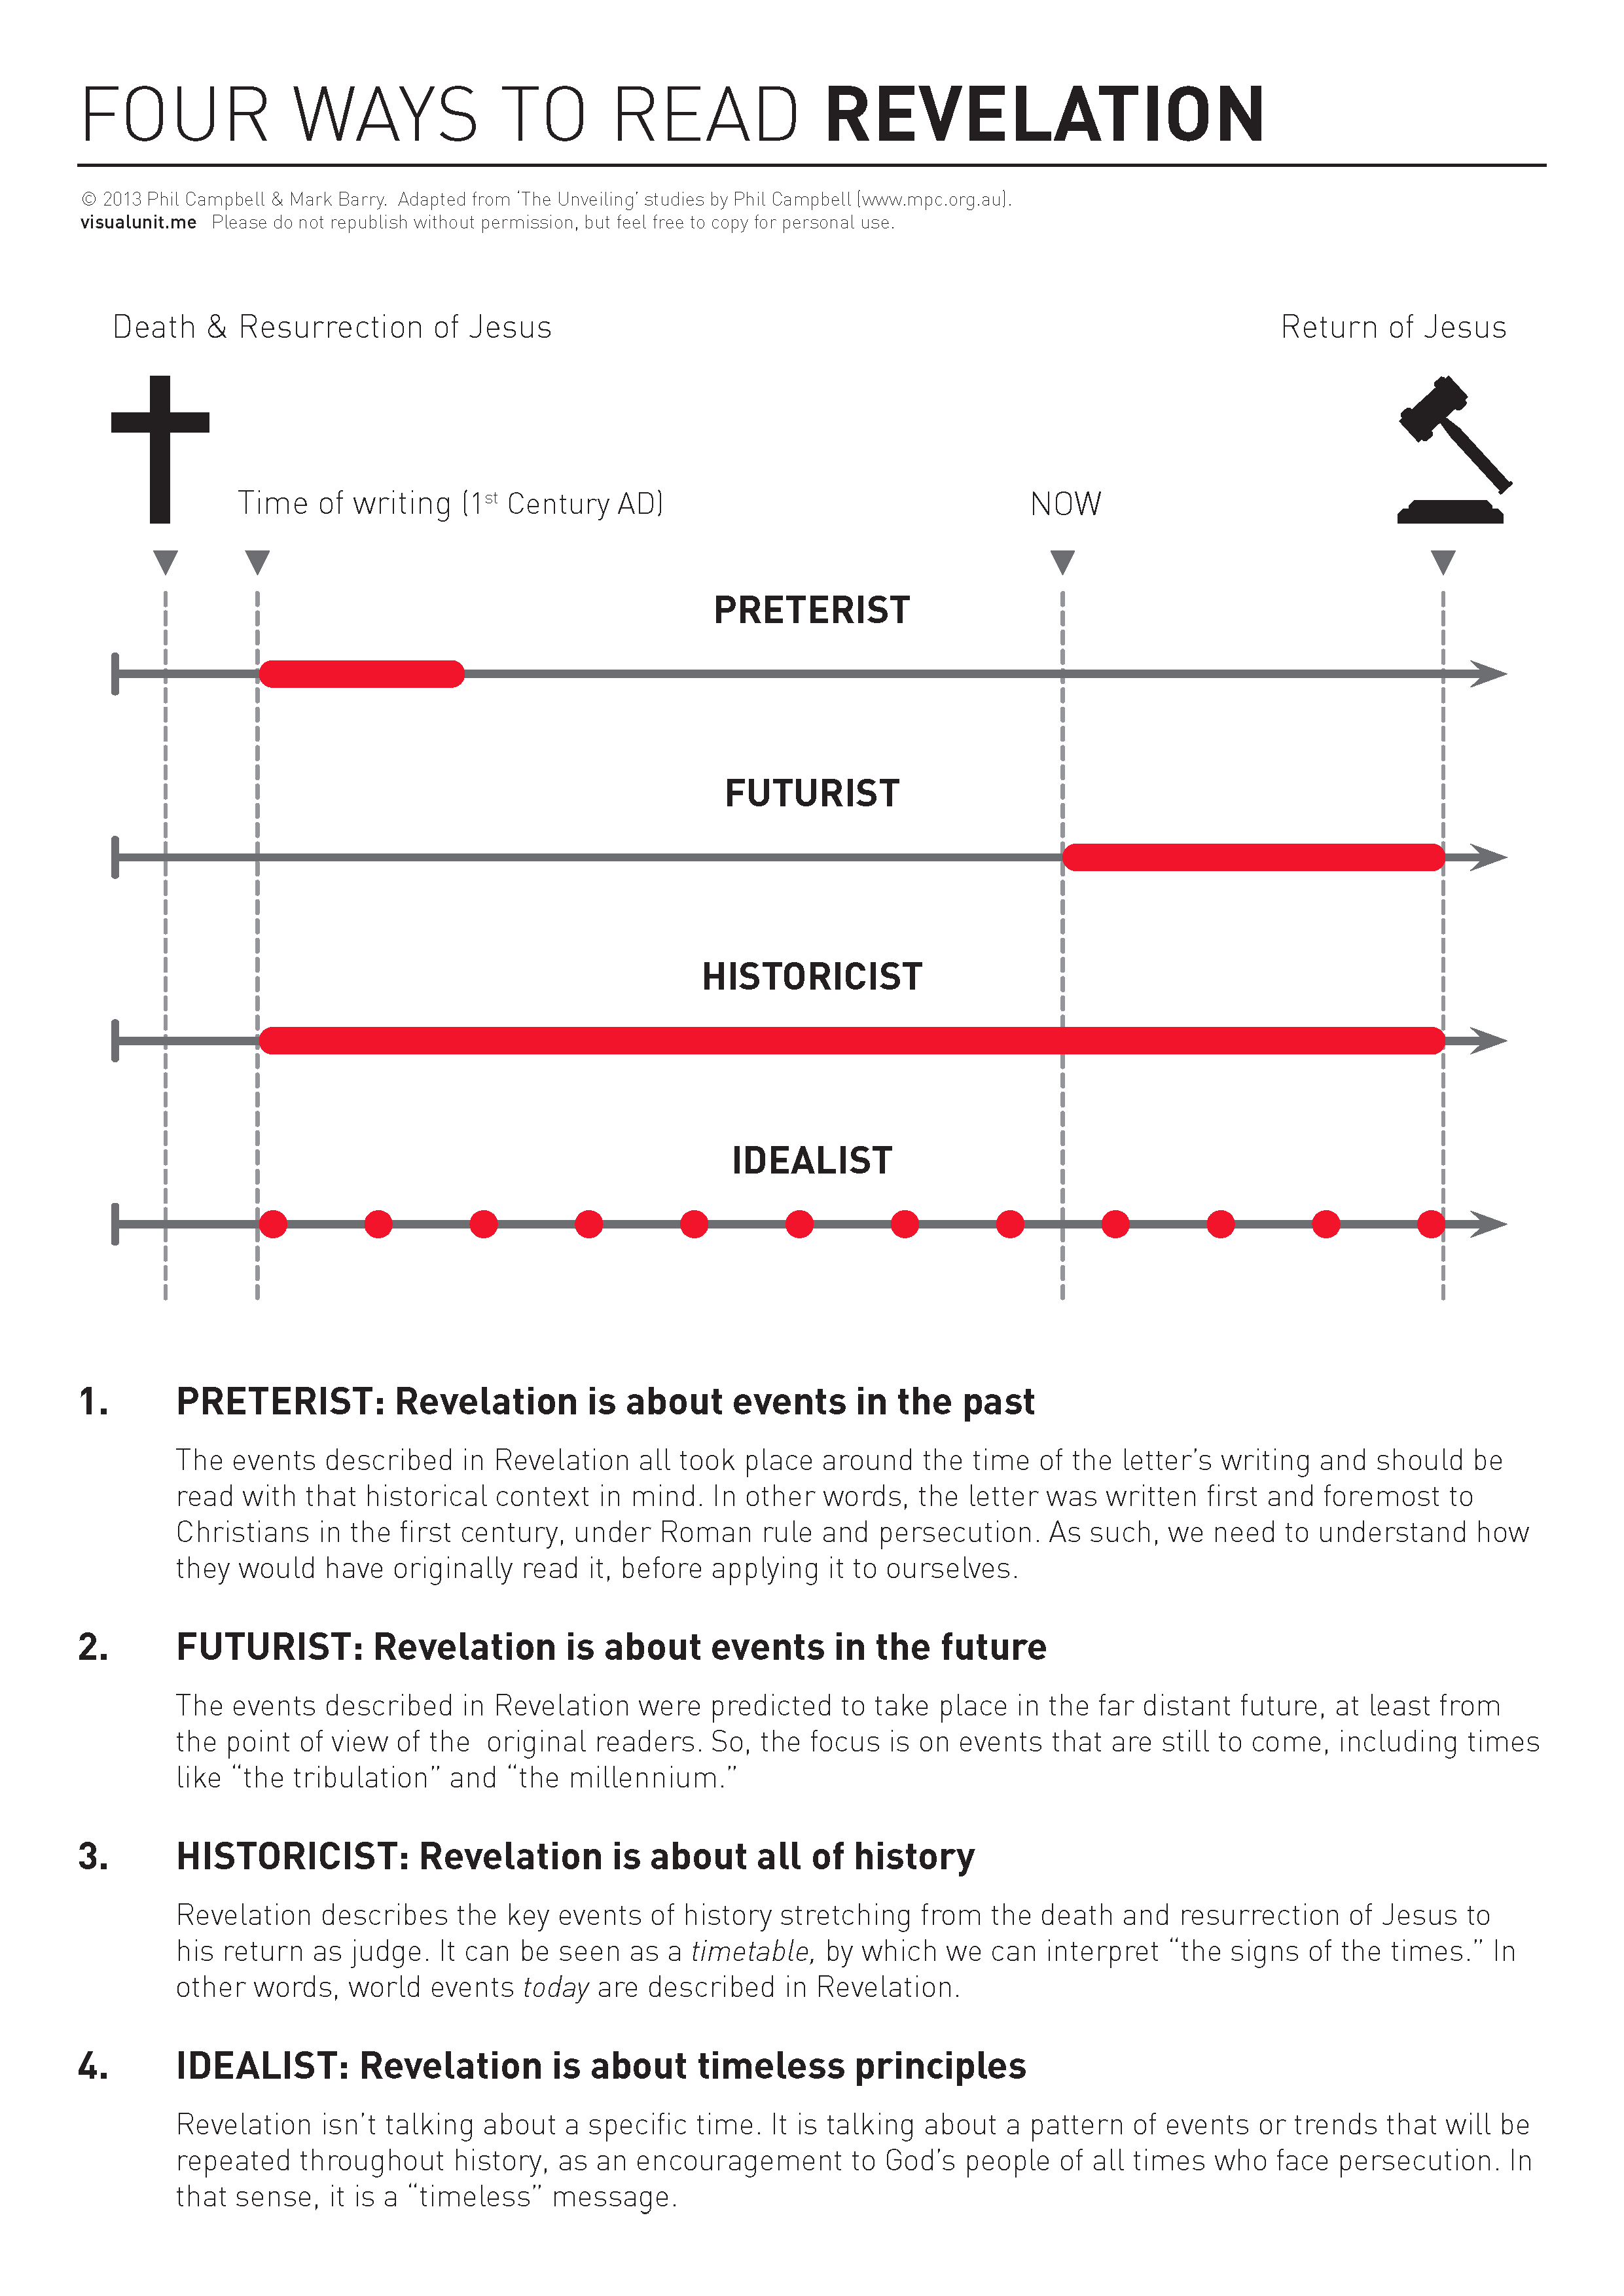 Four ways to read revelation visual unit a diagram contrasting the four main ways of reading the book of revelation in terms of the timing of the events in relationship to the original and ccuart Images